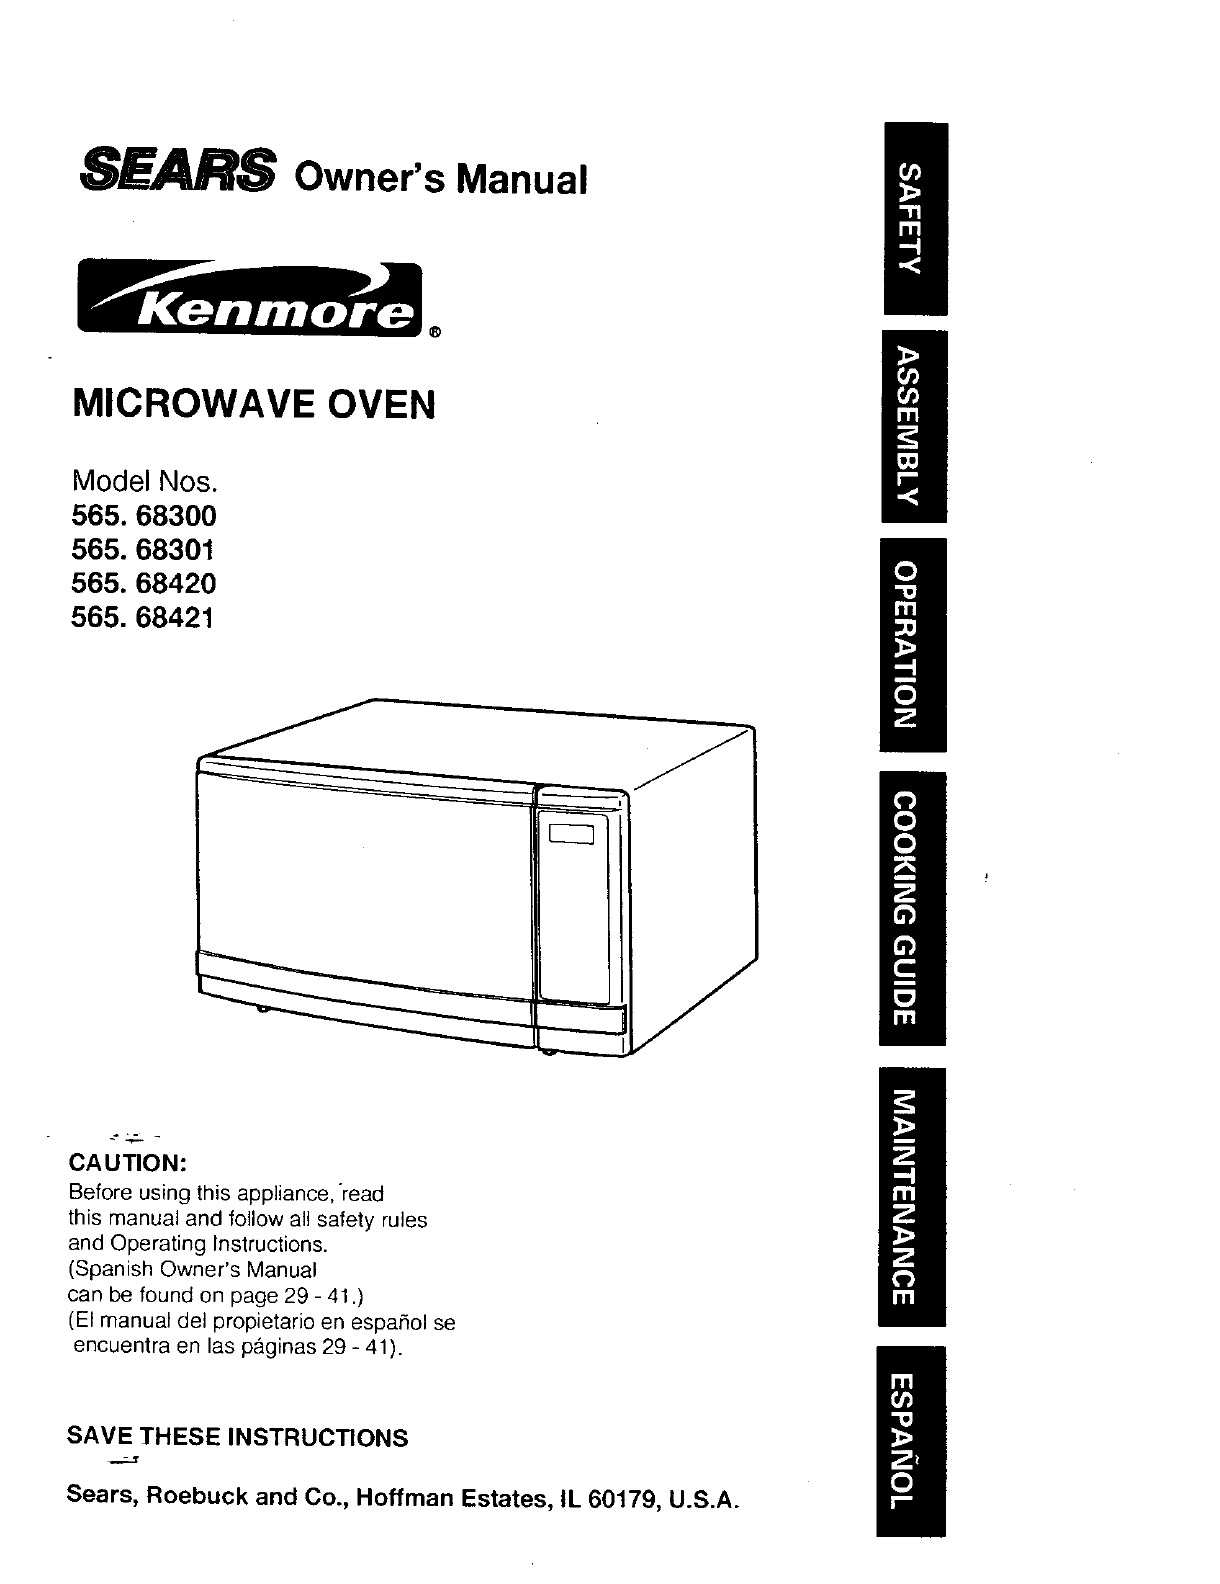 Kenmore Microwave Oven 565.68420 User Guide